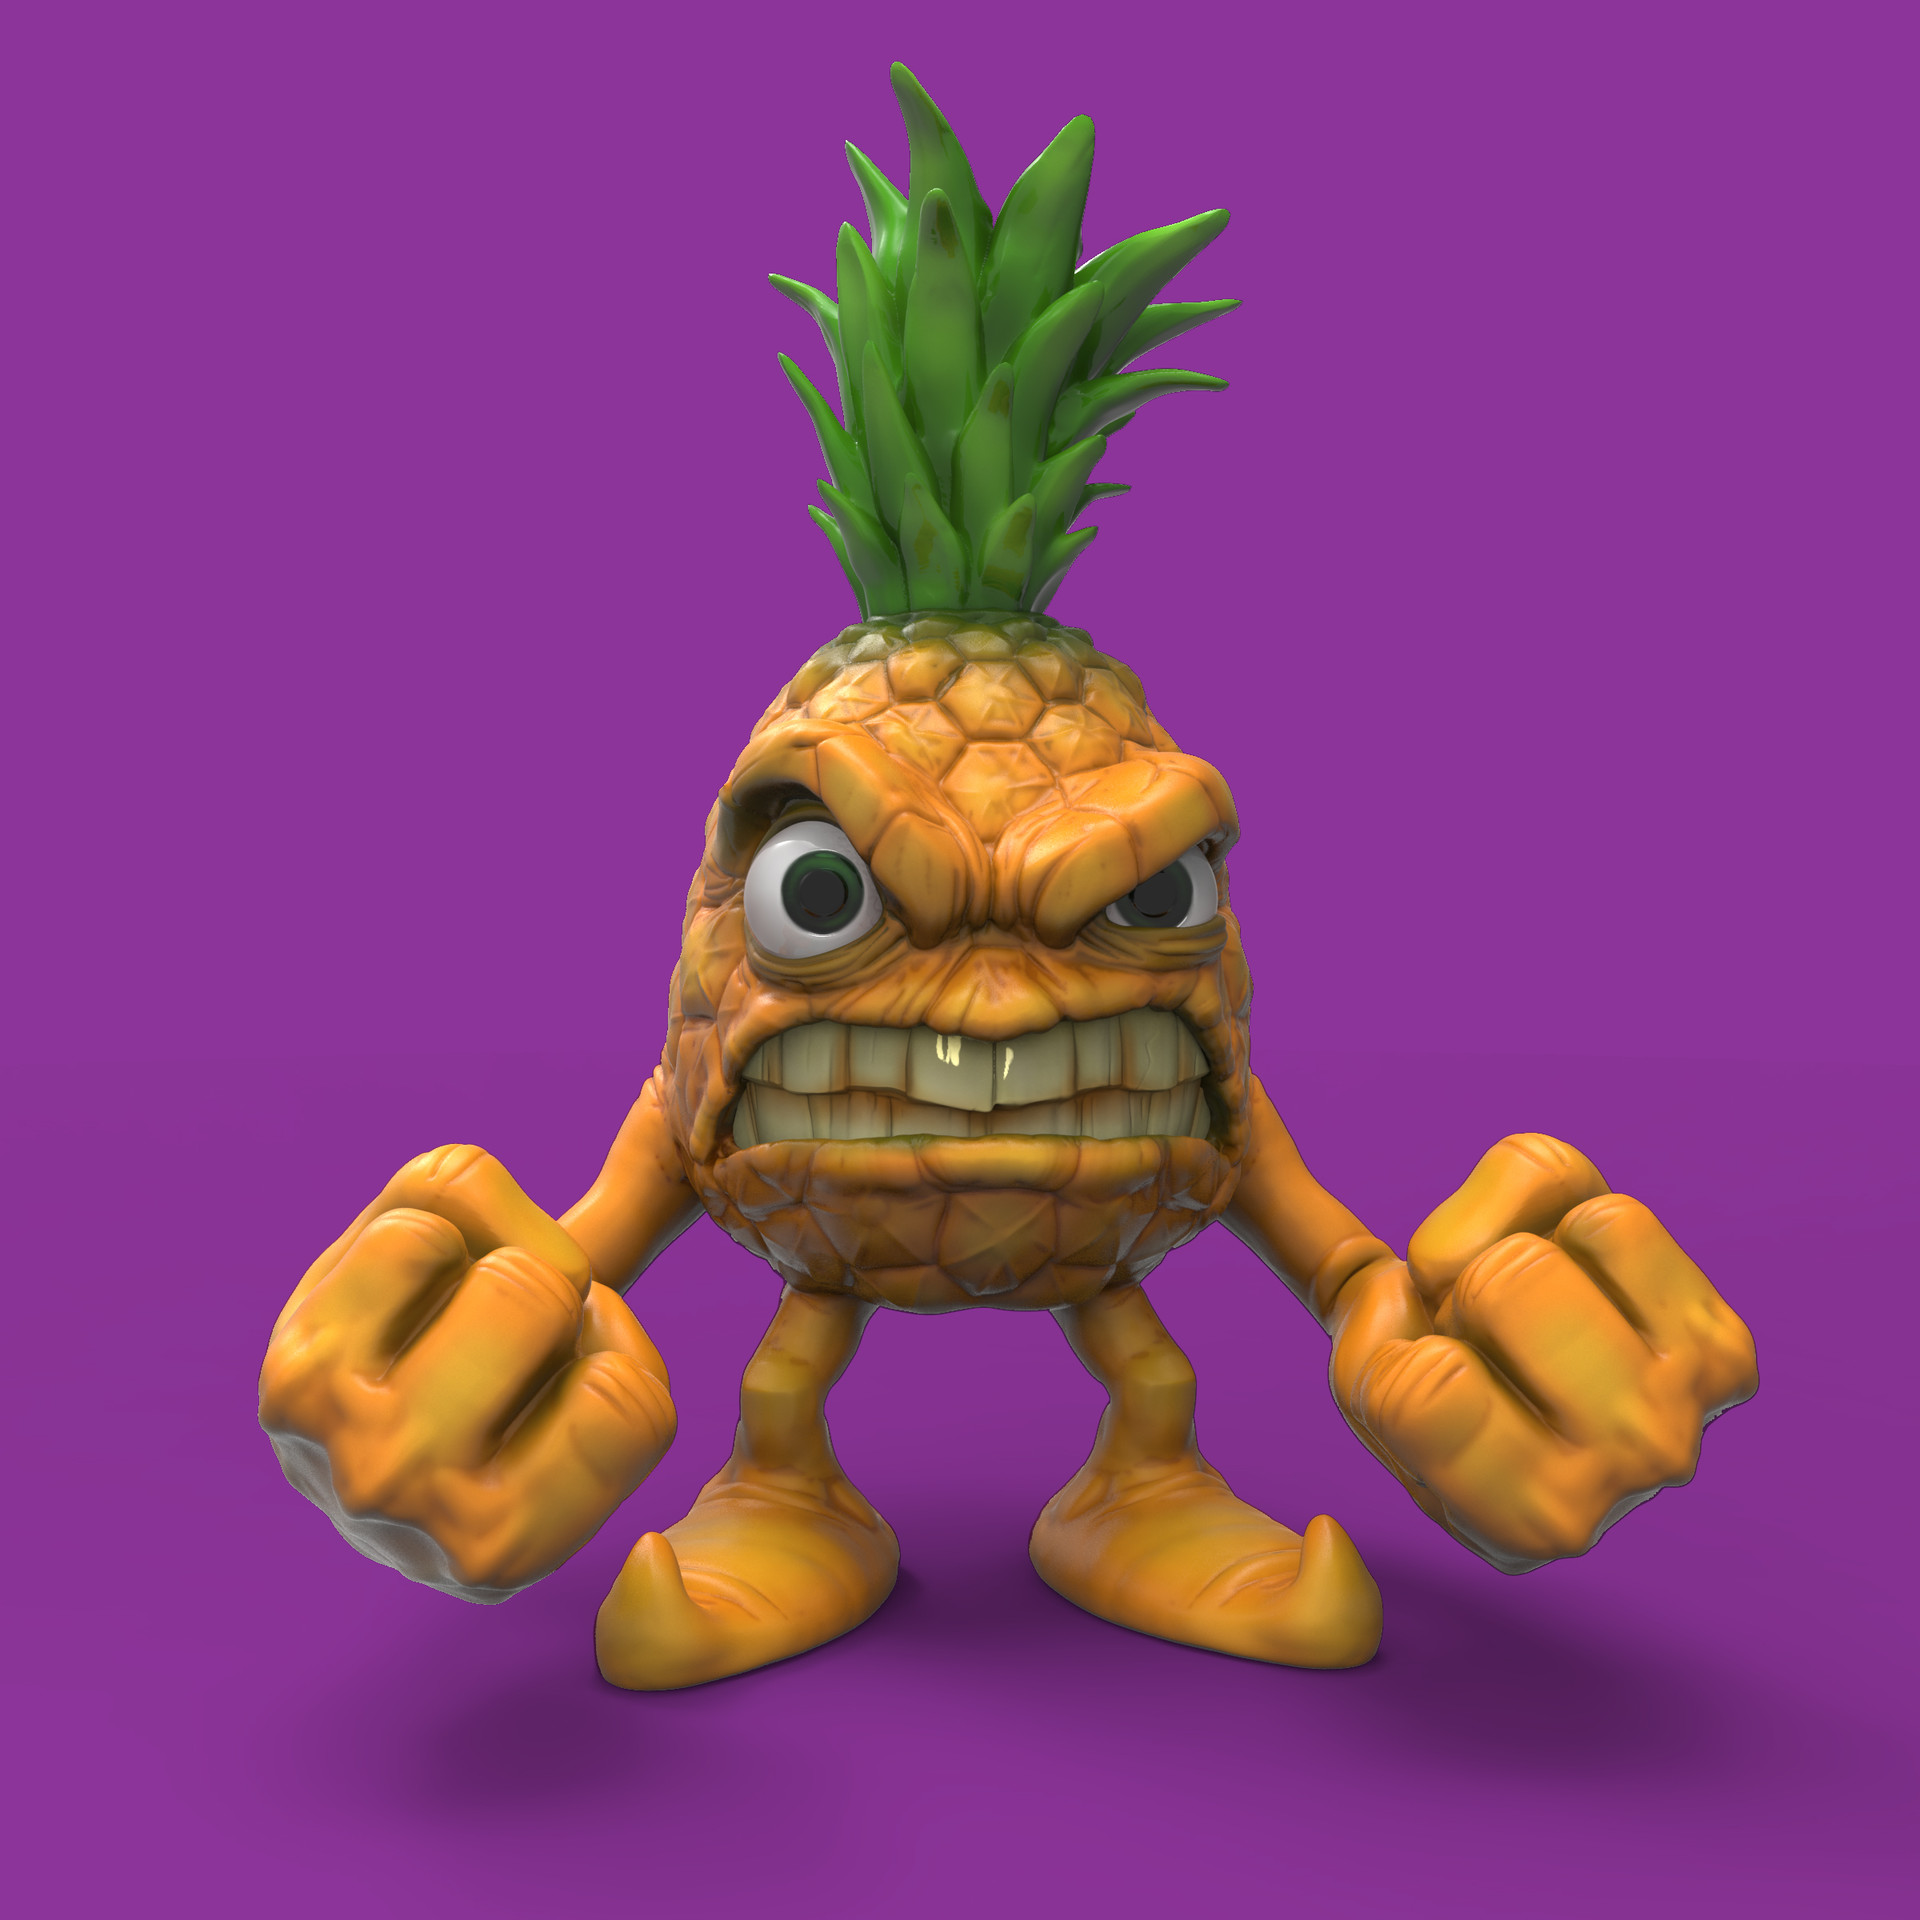 Jake angell angrypineapple clobberintime